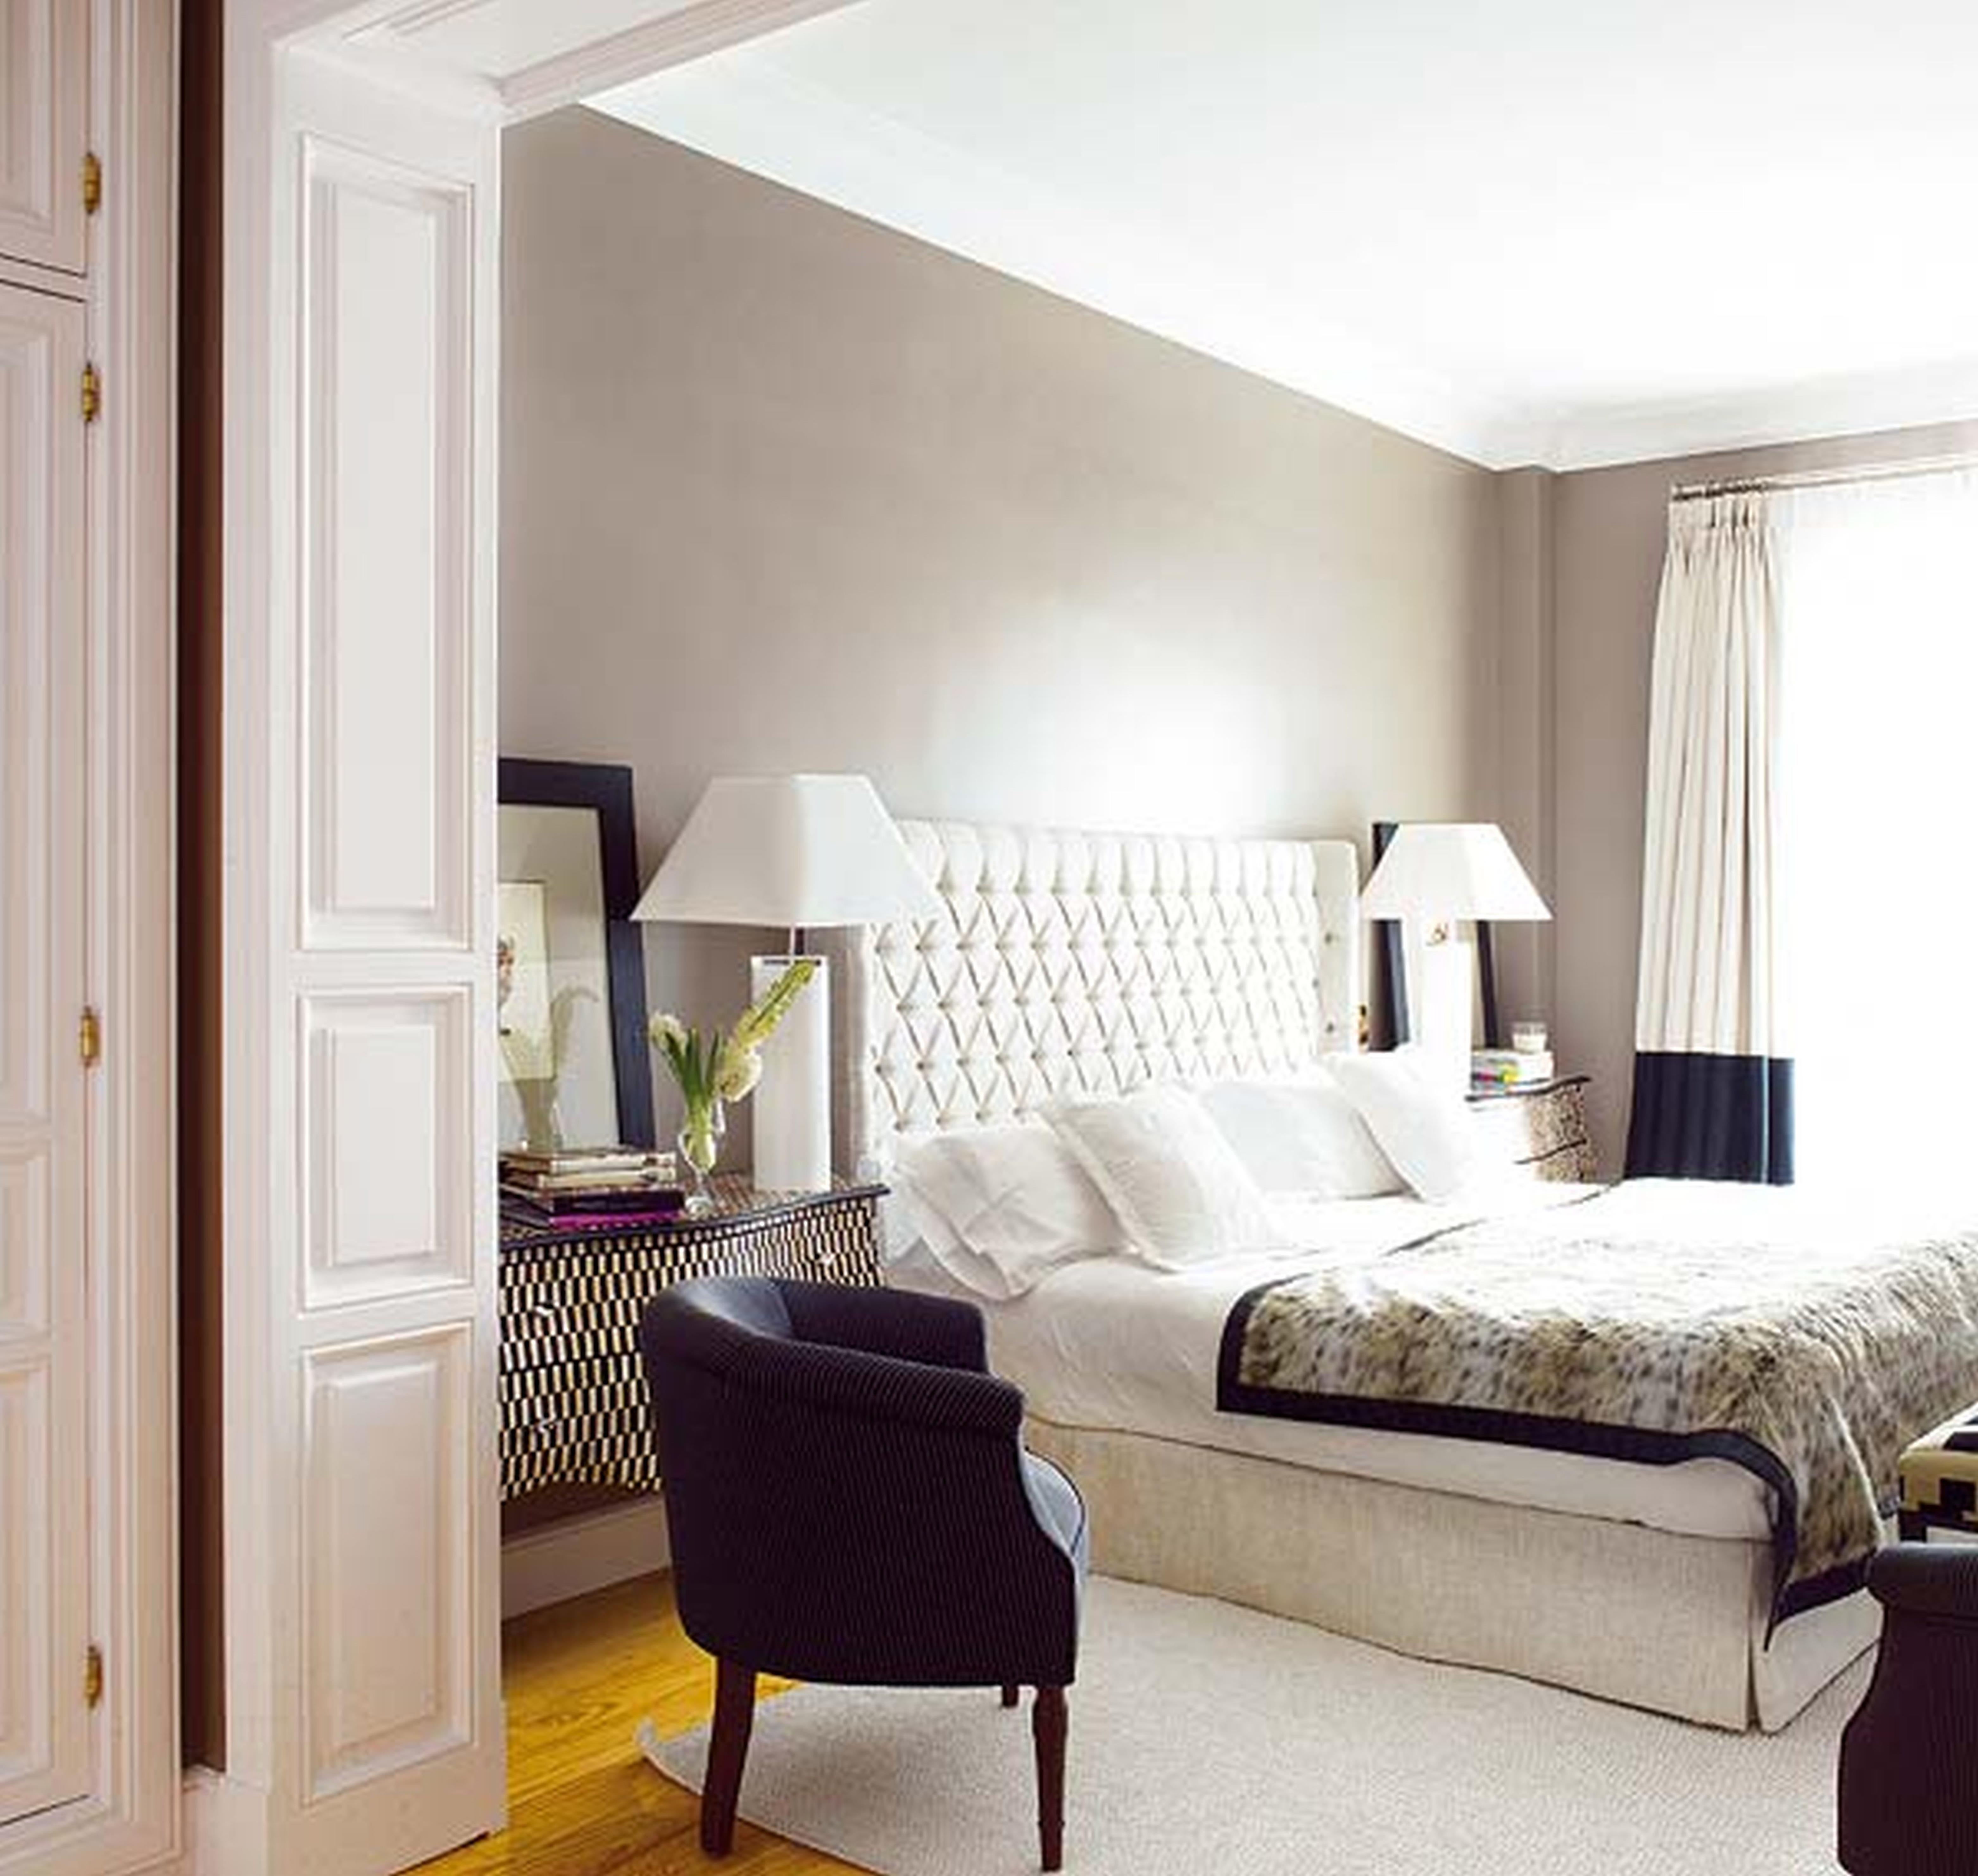 Bedroom Ideas Relaxing Cozy Romantic Relaxing Bedroom Color Ideas 32 Decorelated